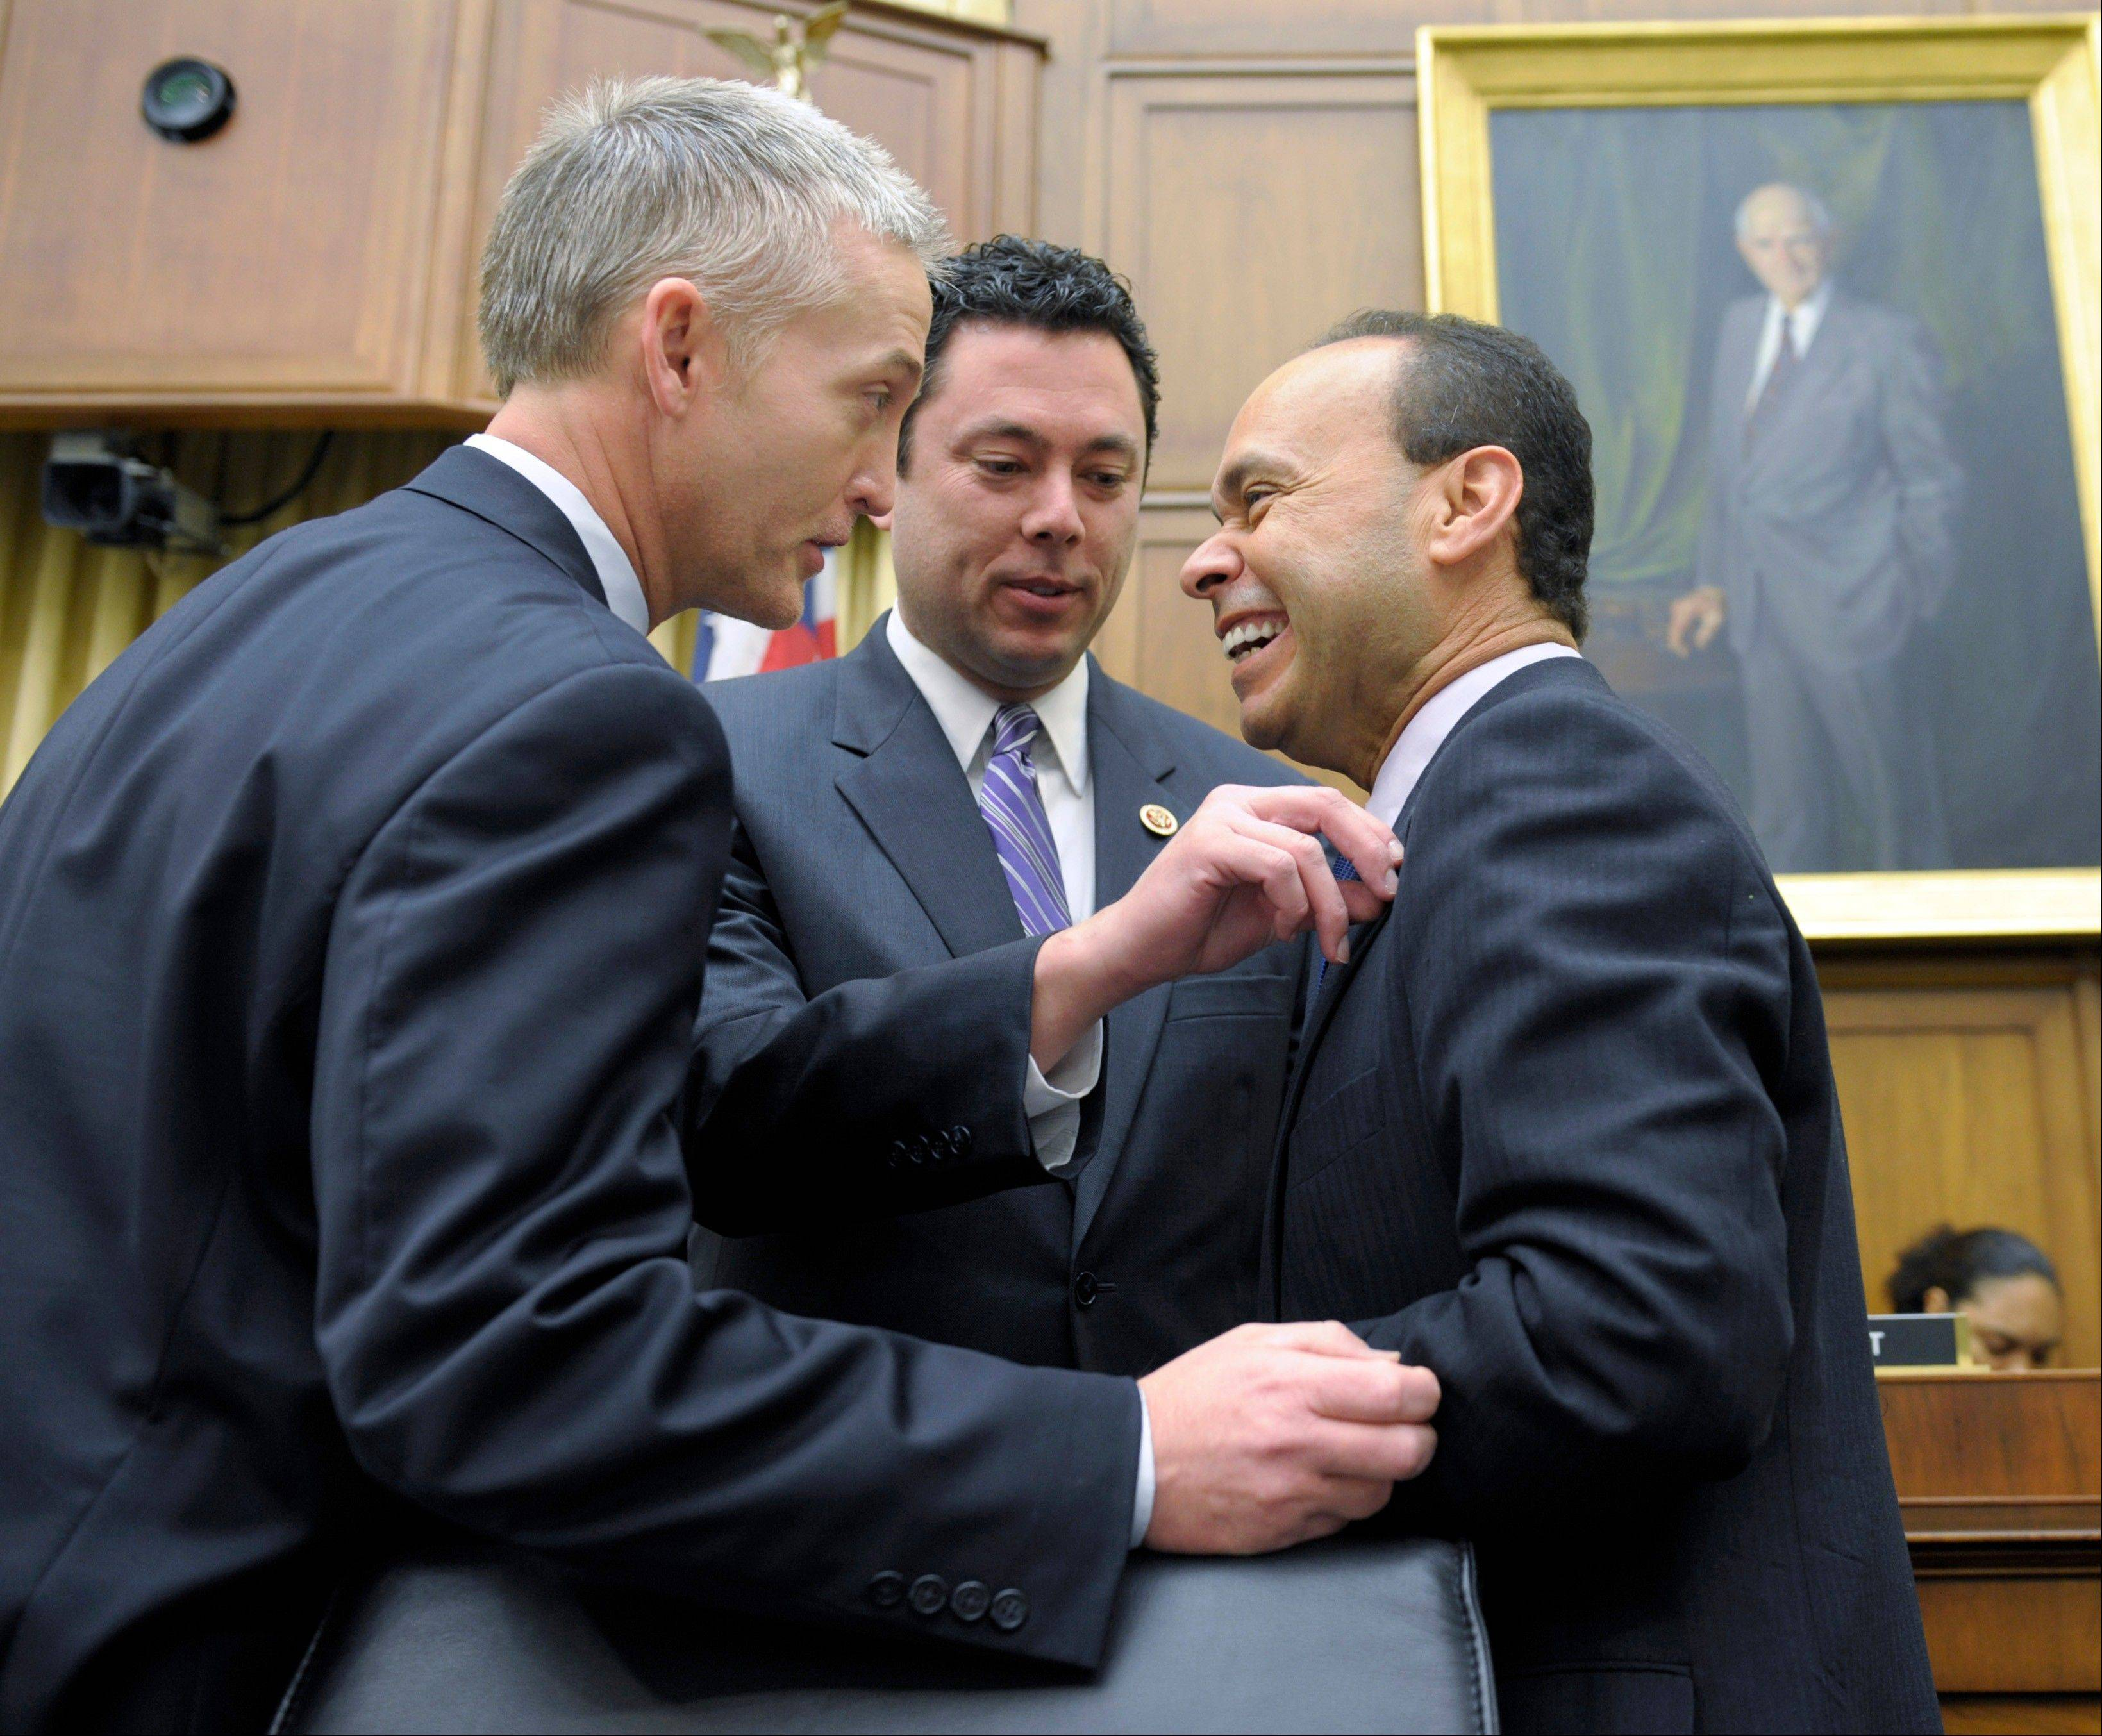 House Judiciary Committee members Rep. Jason Chaffetz, a Utah Republican, center, Rep. Luis Gutierrez, a Chicago Democrat, right, and Rep. Trey Gowdy, a South Carolina Republican, share a laugh prior to a committee hearing on immigration reform last Feb. 5. The question central to immigration legislation is whether the 11 million immigrants already in the U.S. illegally should get a path to citizenship.